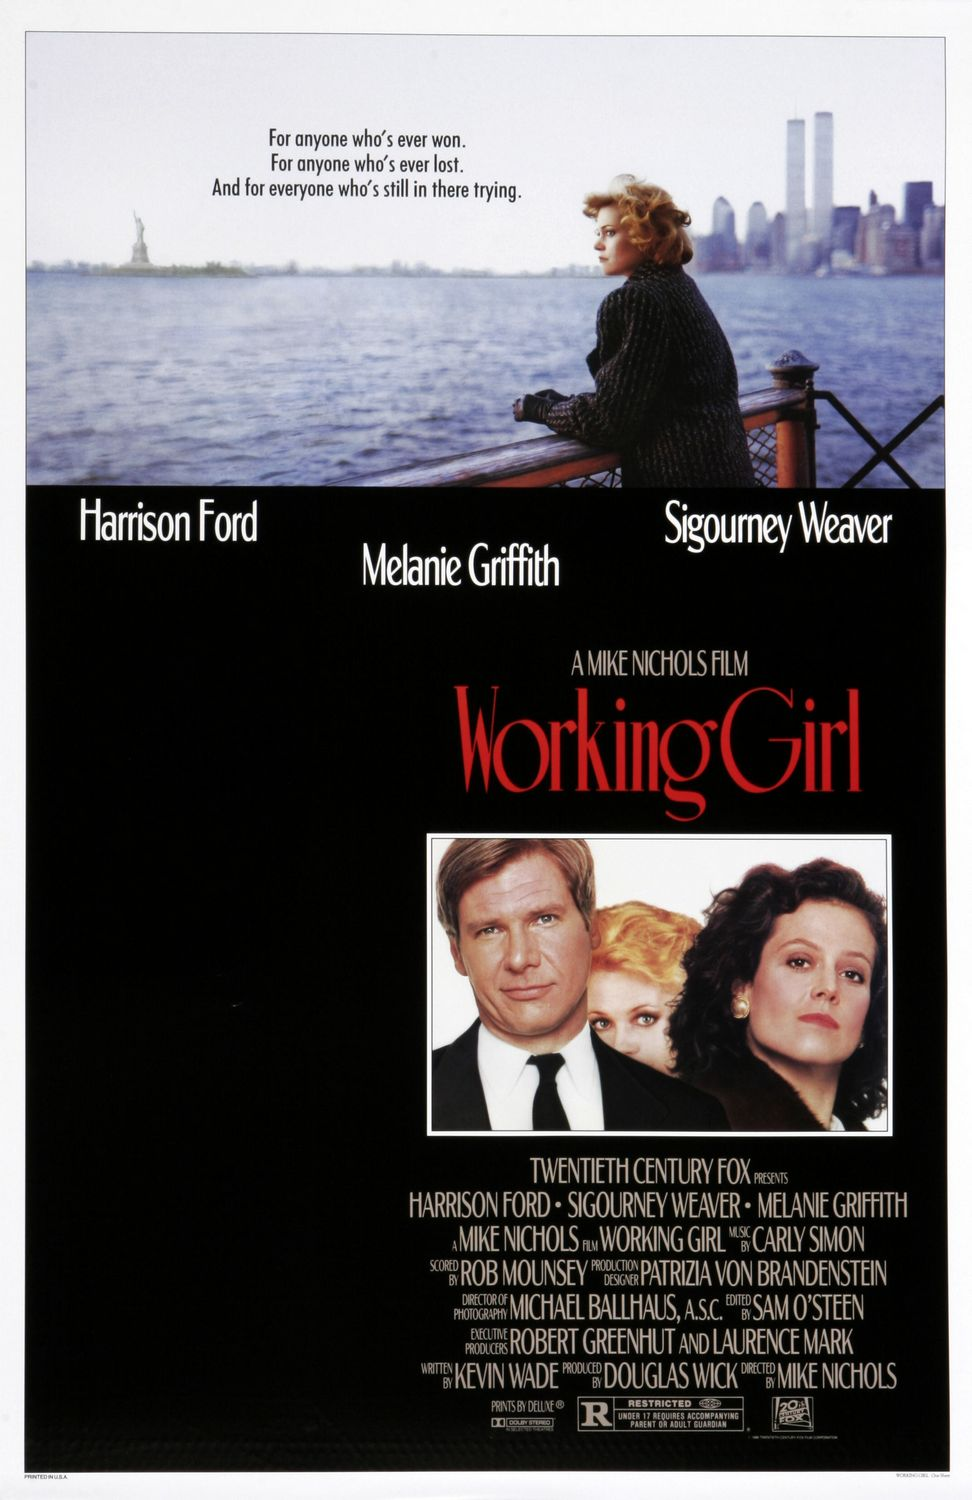 mike nichols, mike nichols movies, working girl, classic movies